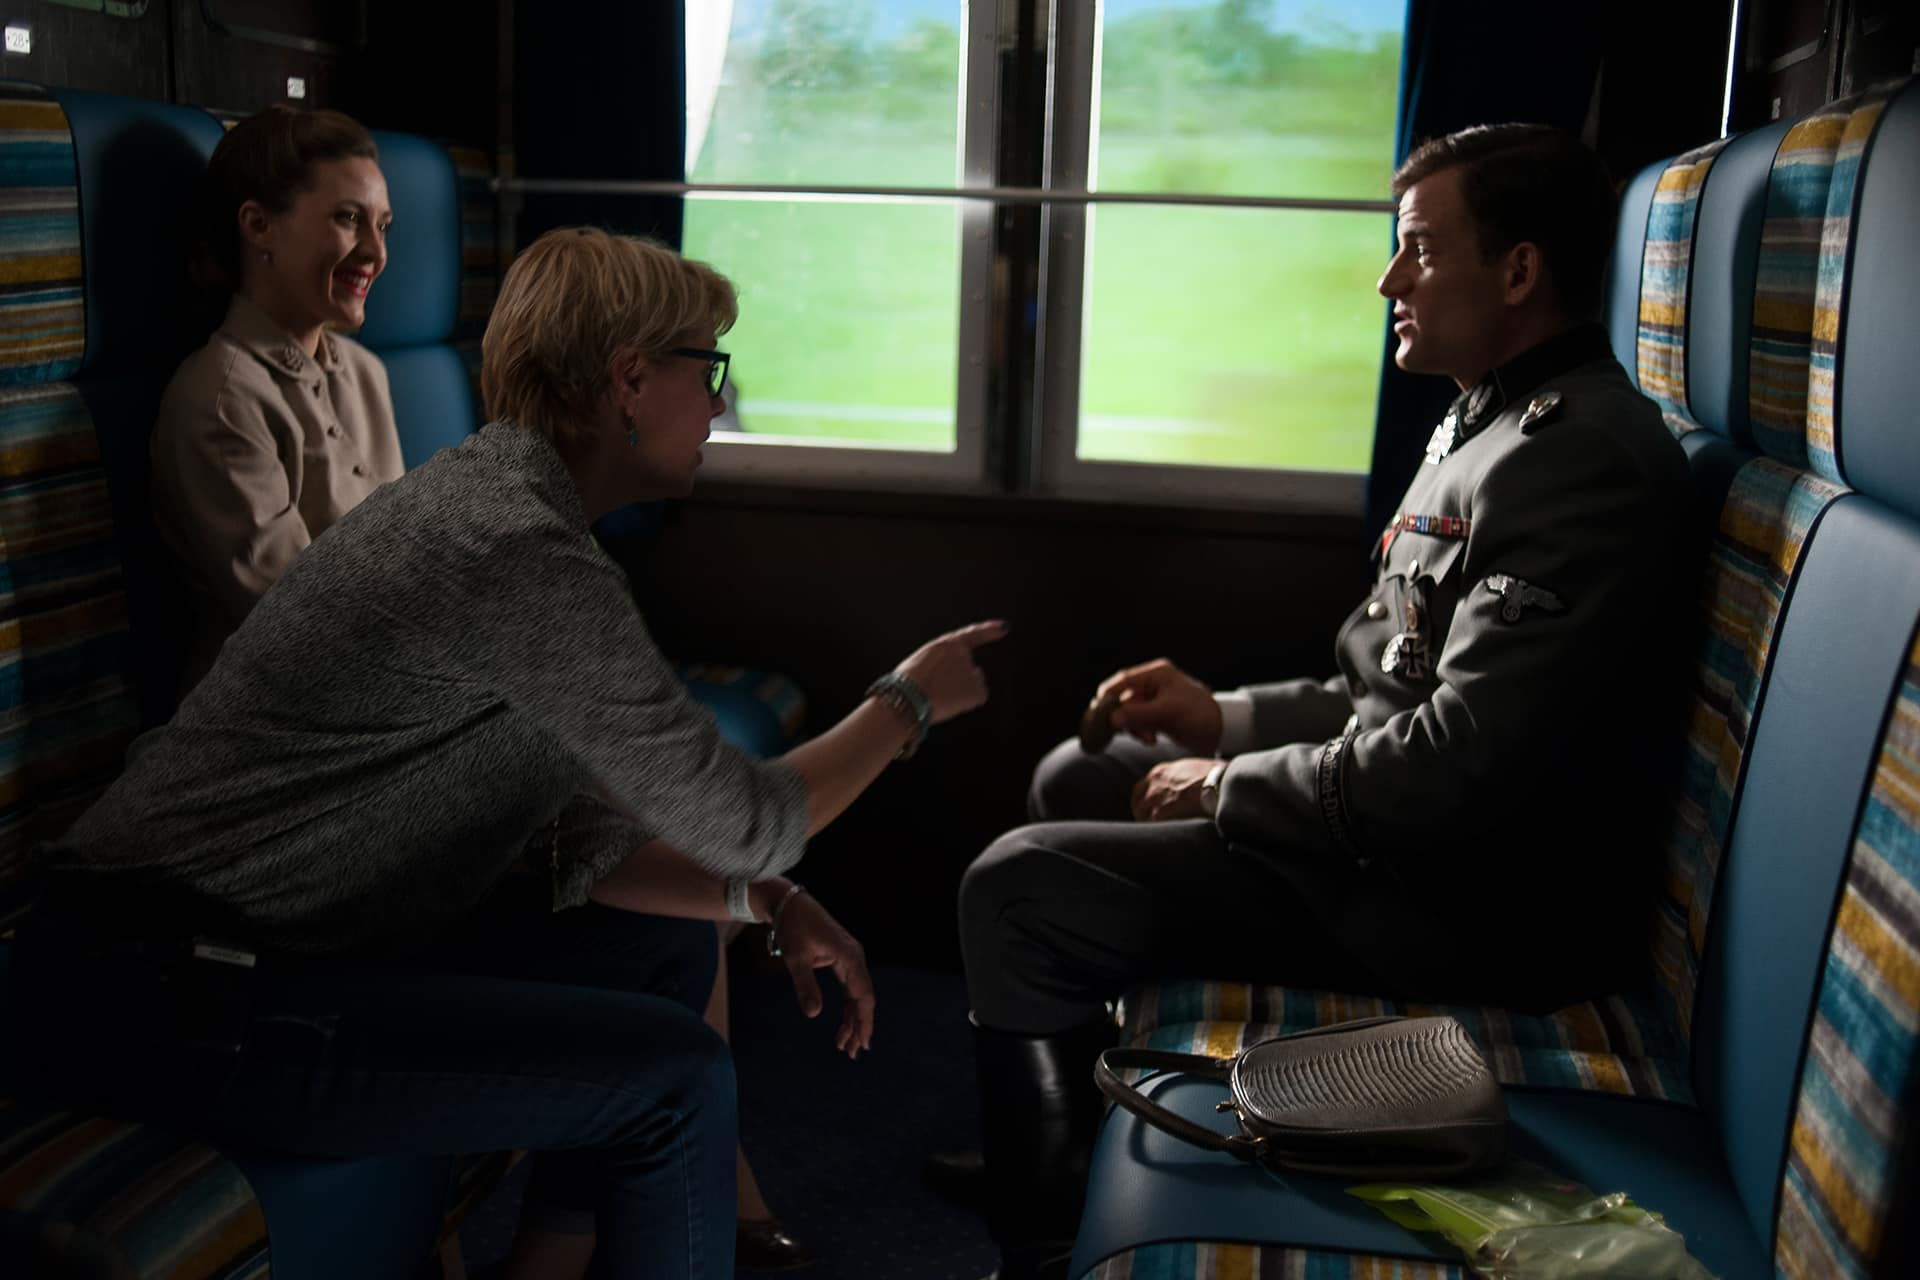 Director Amanda Tapping discusses a scene with actors Torben Liebrecht and Evelyne Brochu.